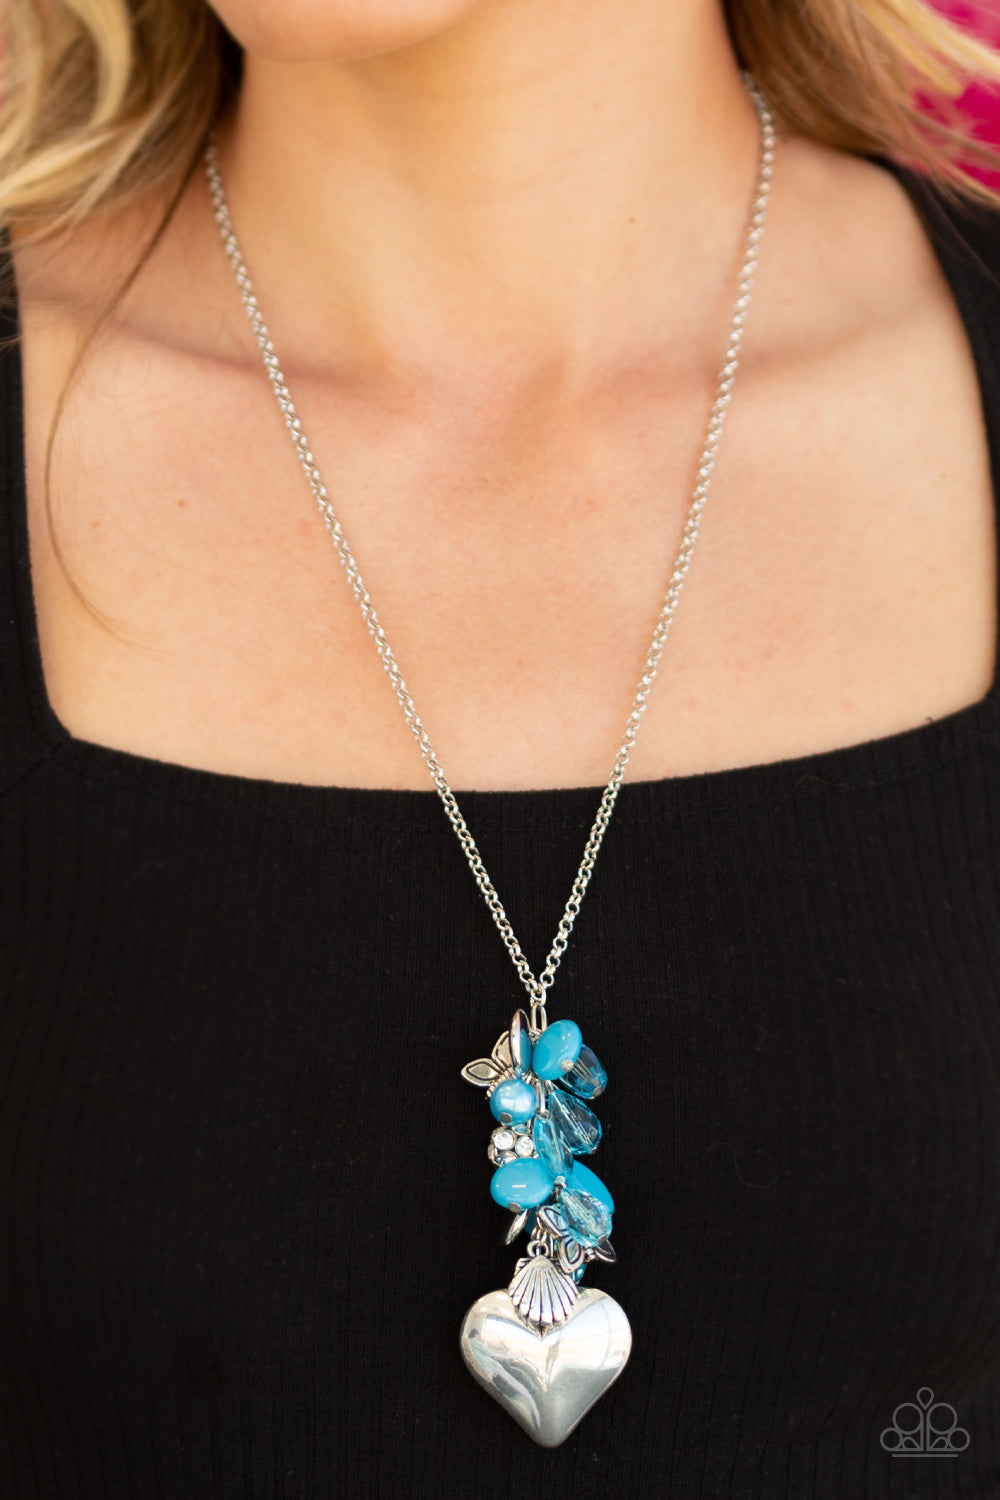 Paparazzi Jewelry & Accessories - Beach Buzz - Blue Necklace. Bling By Titia Boutique